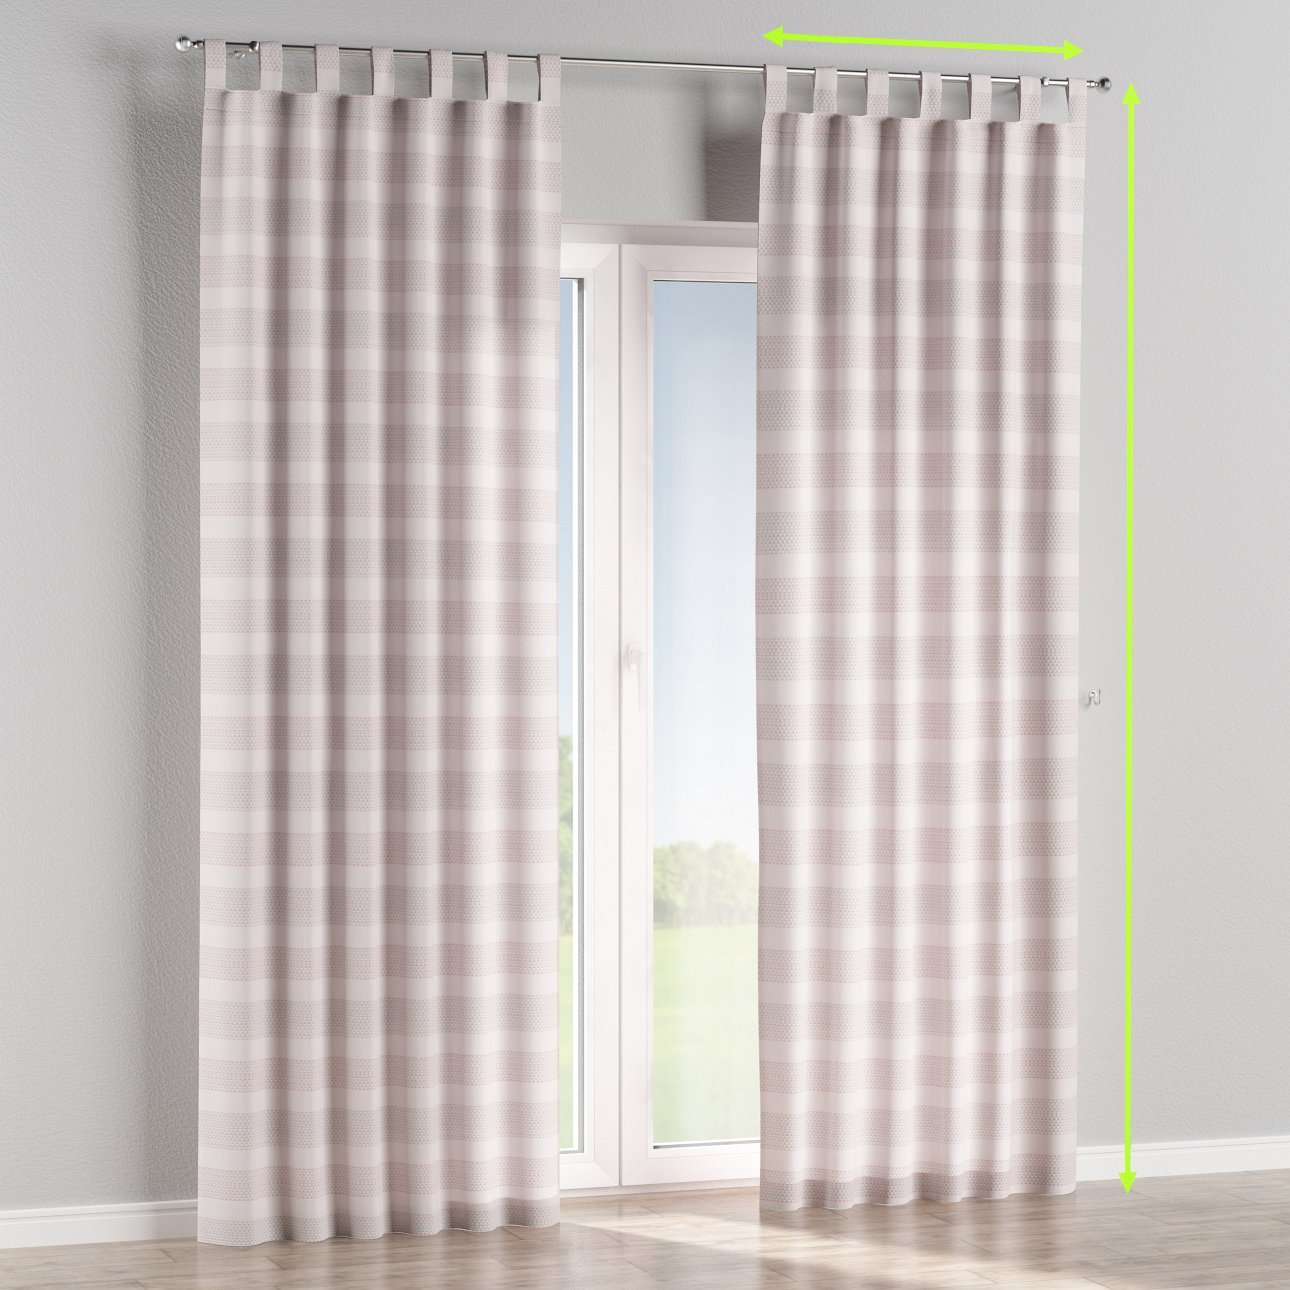 Tab top lined curtains in collection Rustica, fabric: 140-29